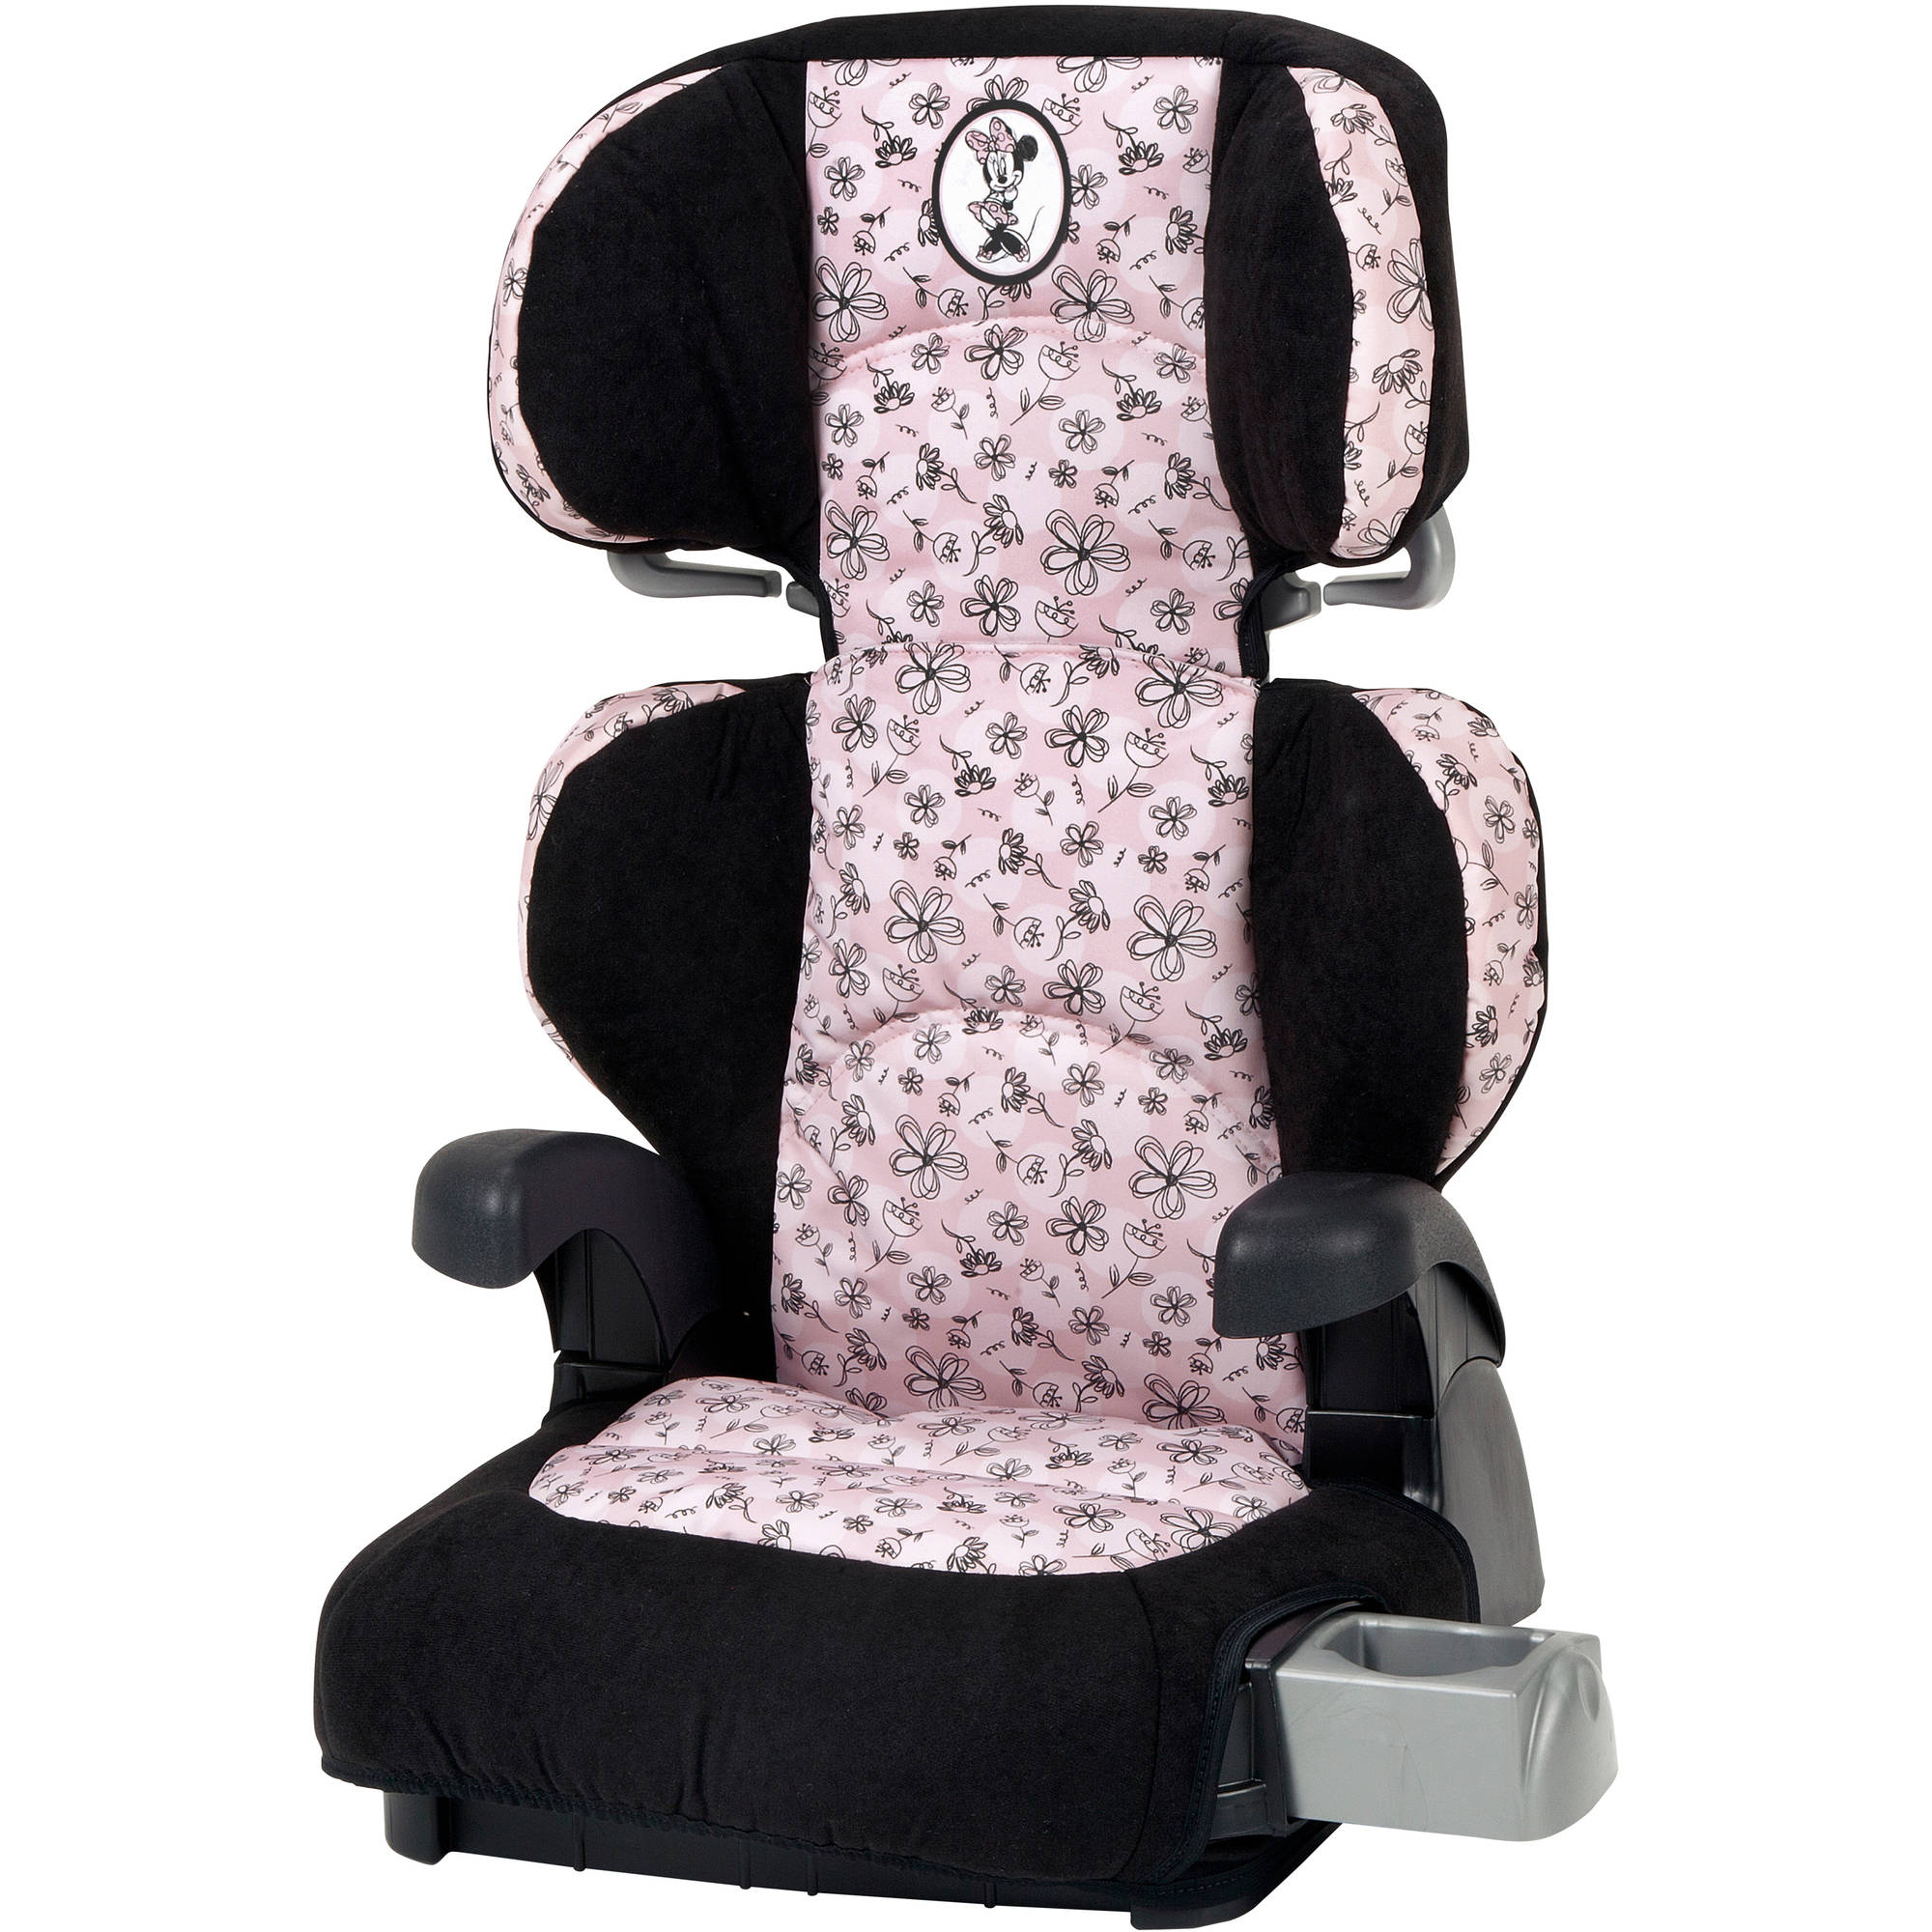 Disney Pronto Booster Car Seat, Minnie Flower